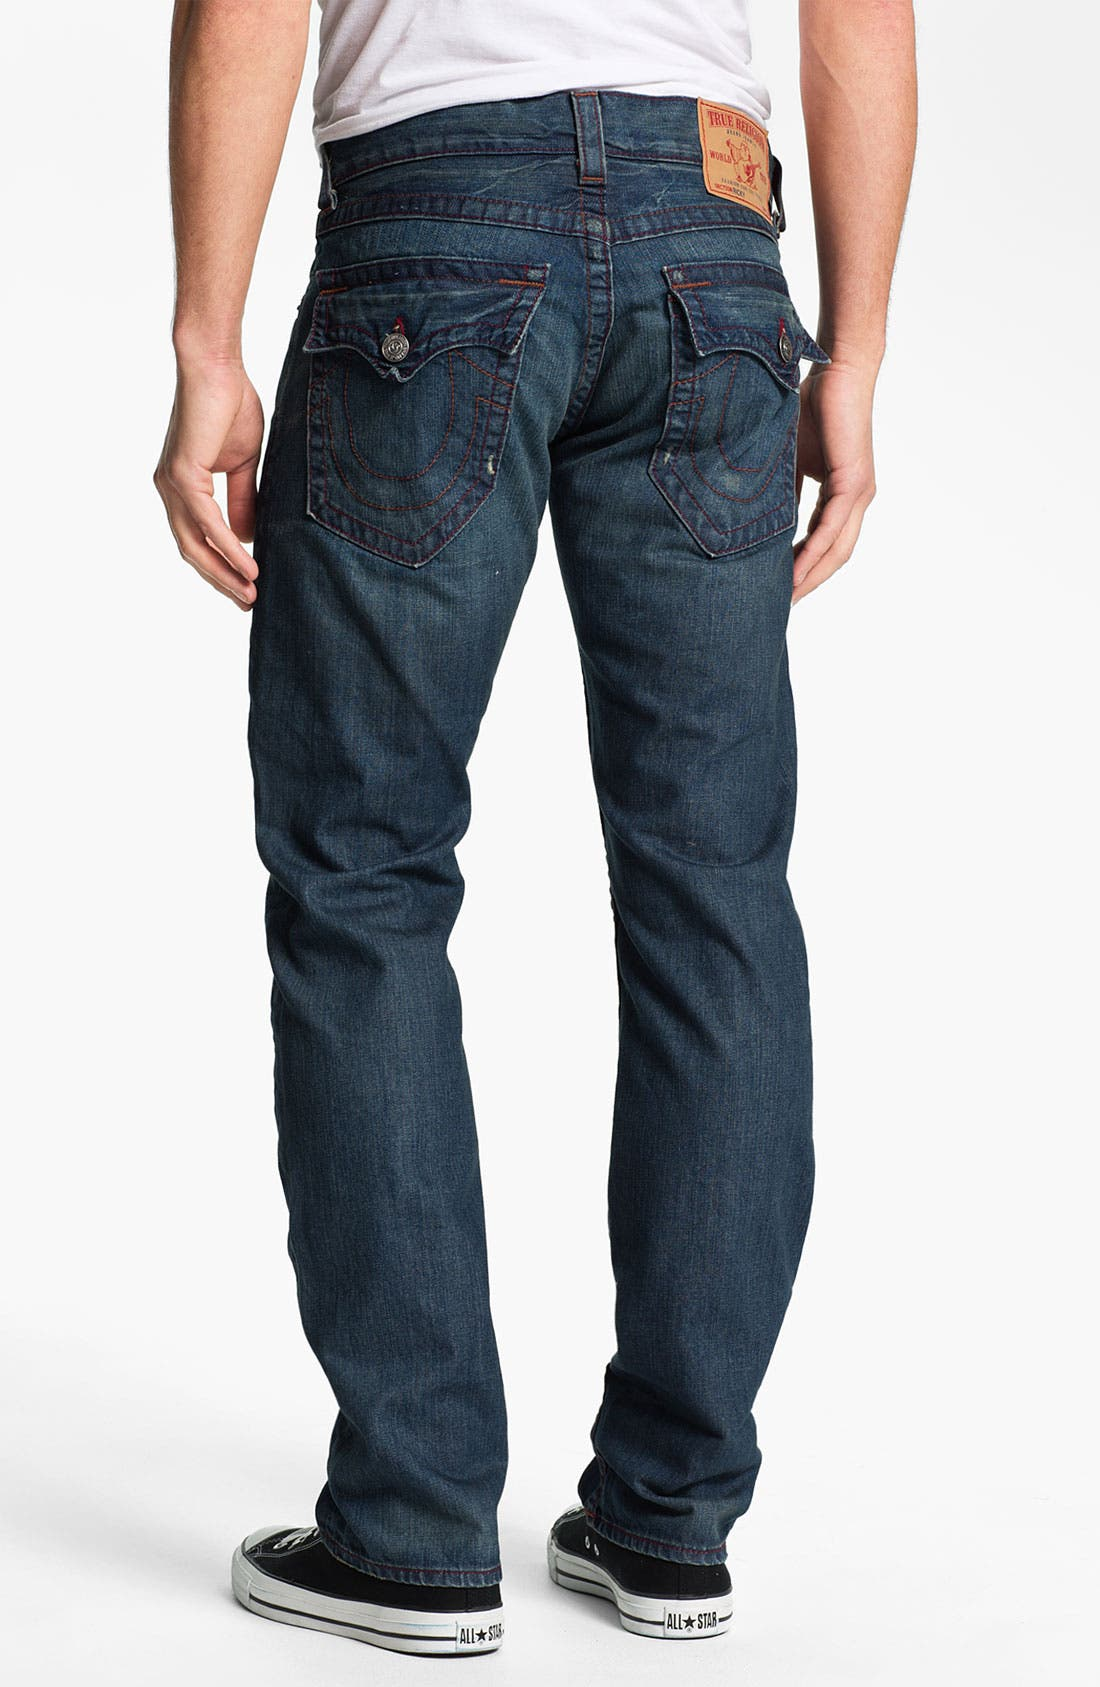 Alternate Image 1 Selected - True Religion Brand Jeans 'Ricky' Straight Leg Jeans (Dark Drifter)